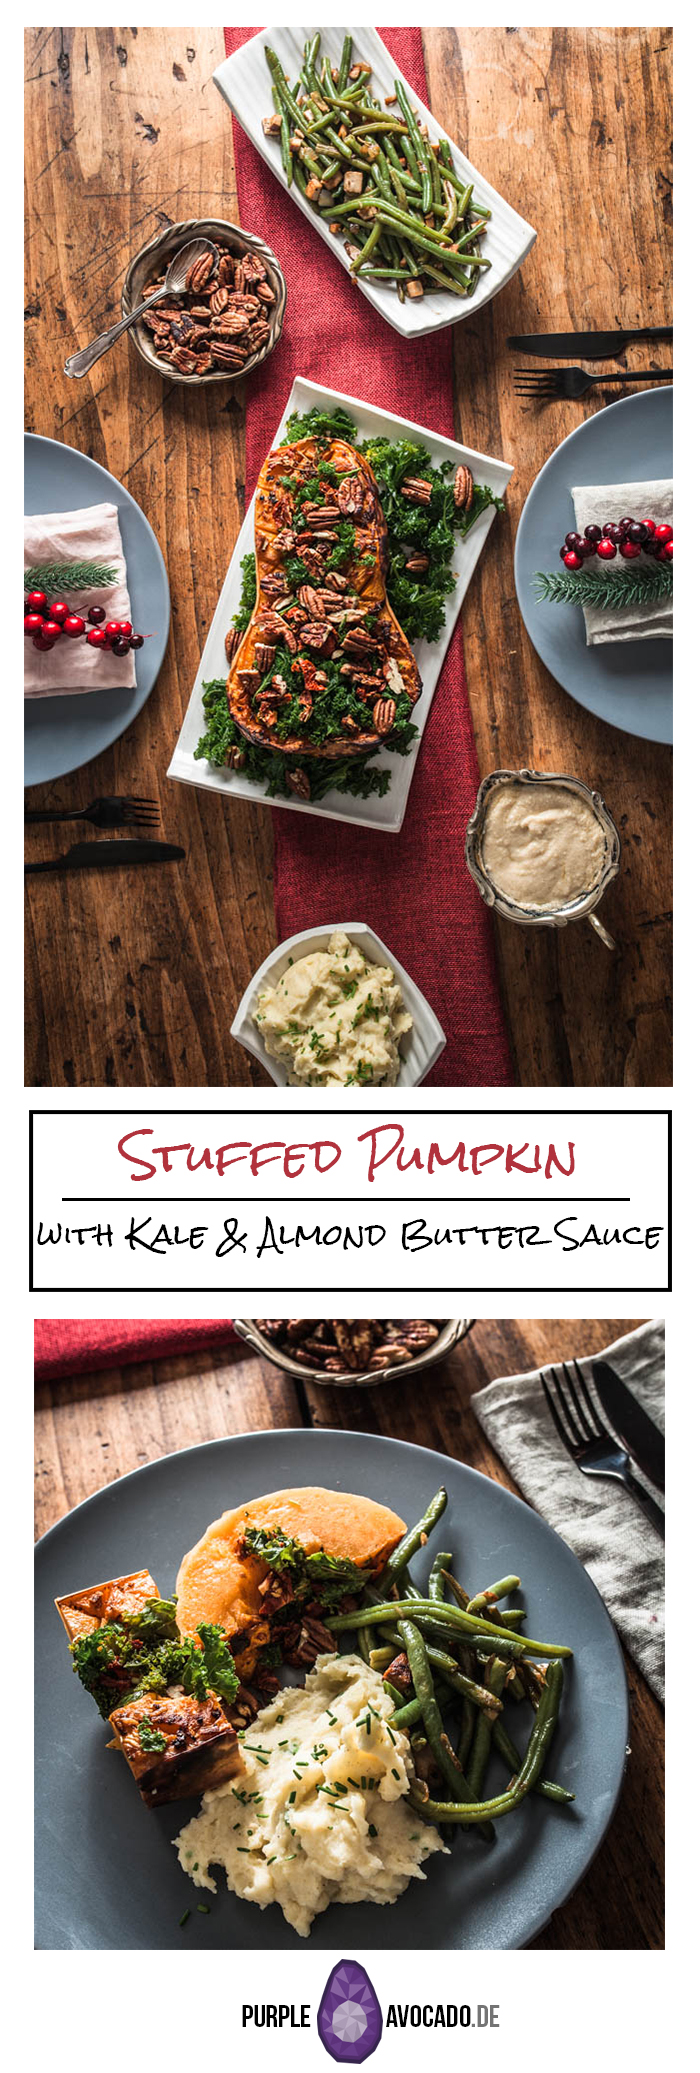 Stuffed pumpkin with kale, pecan nuts, dried tomatoes and a rich almond butter sauce. #vegan #recipe #christmas #holidays #autumn #winter #kale #foodstyling #food #photography